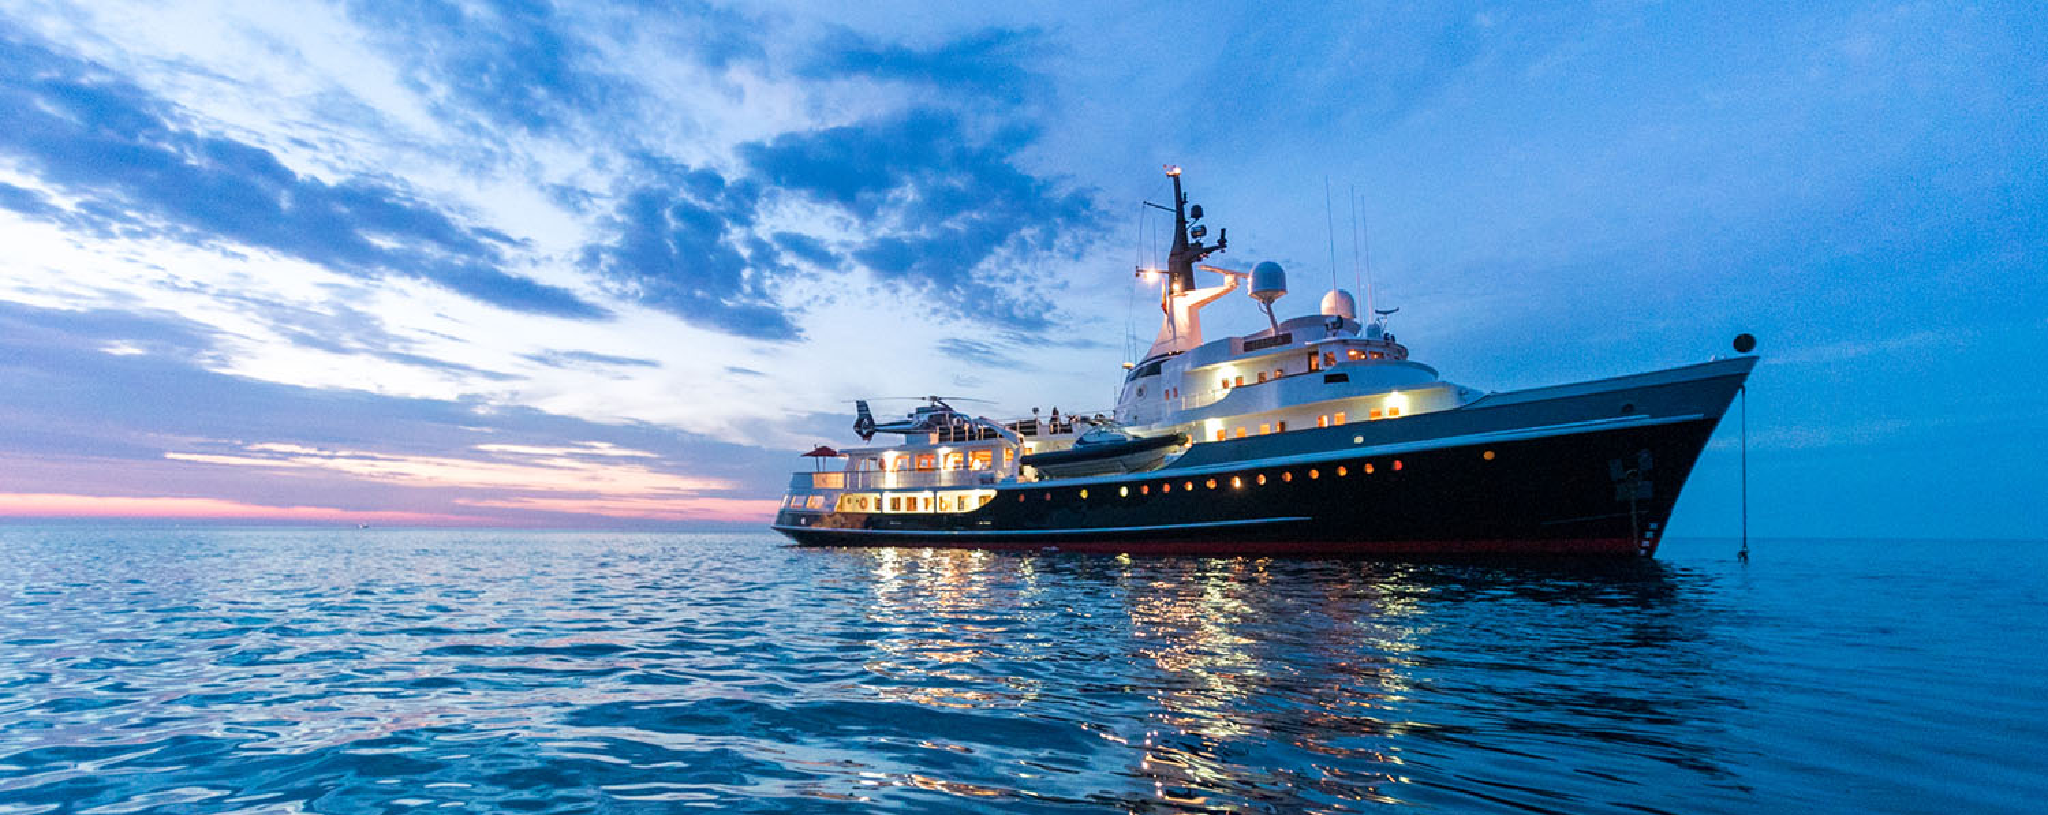 Looking for a superyacht?